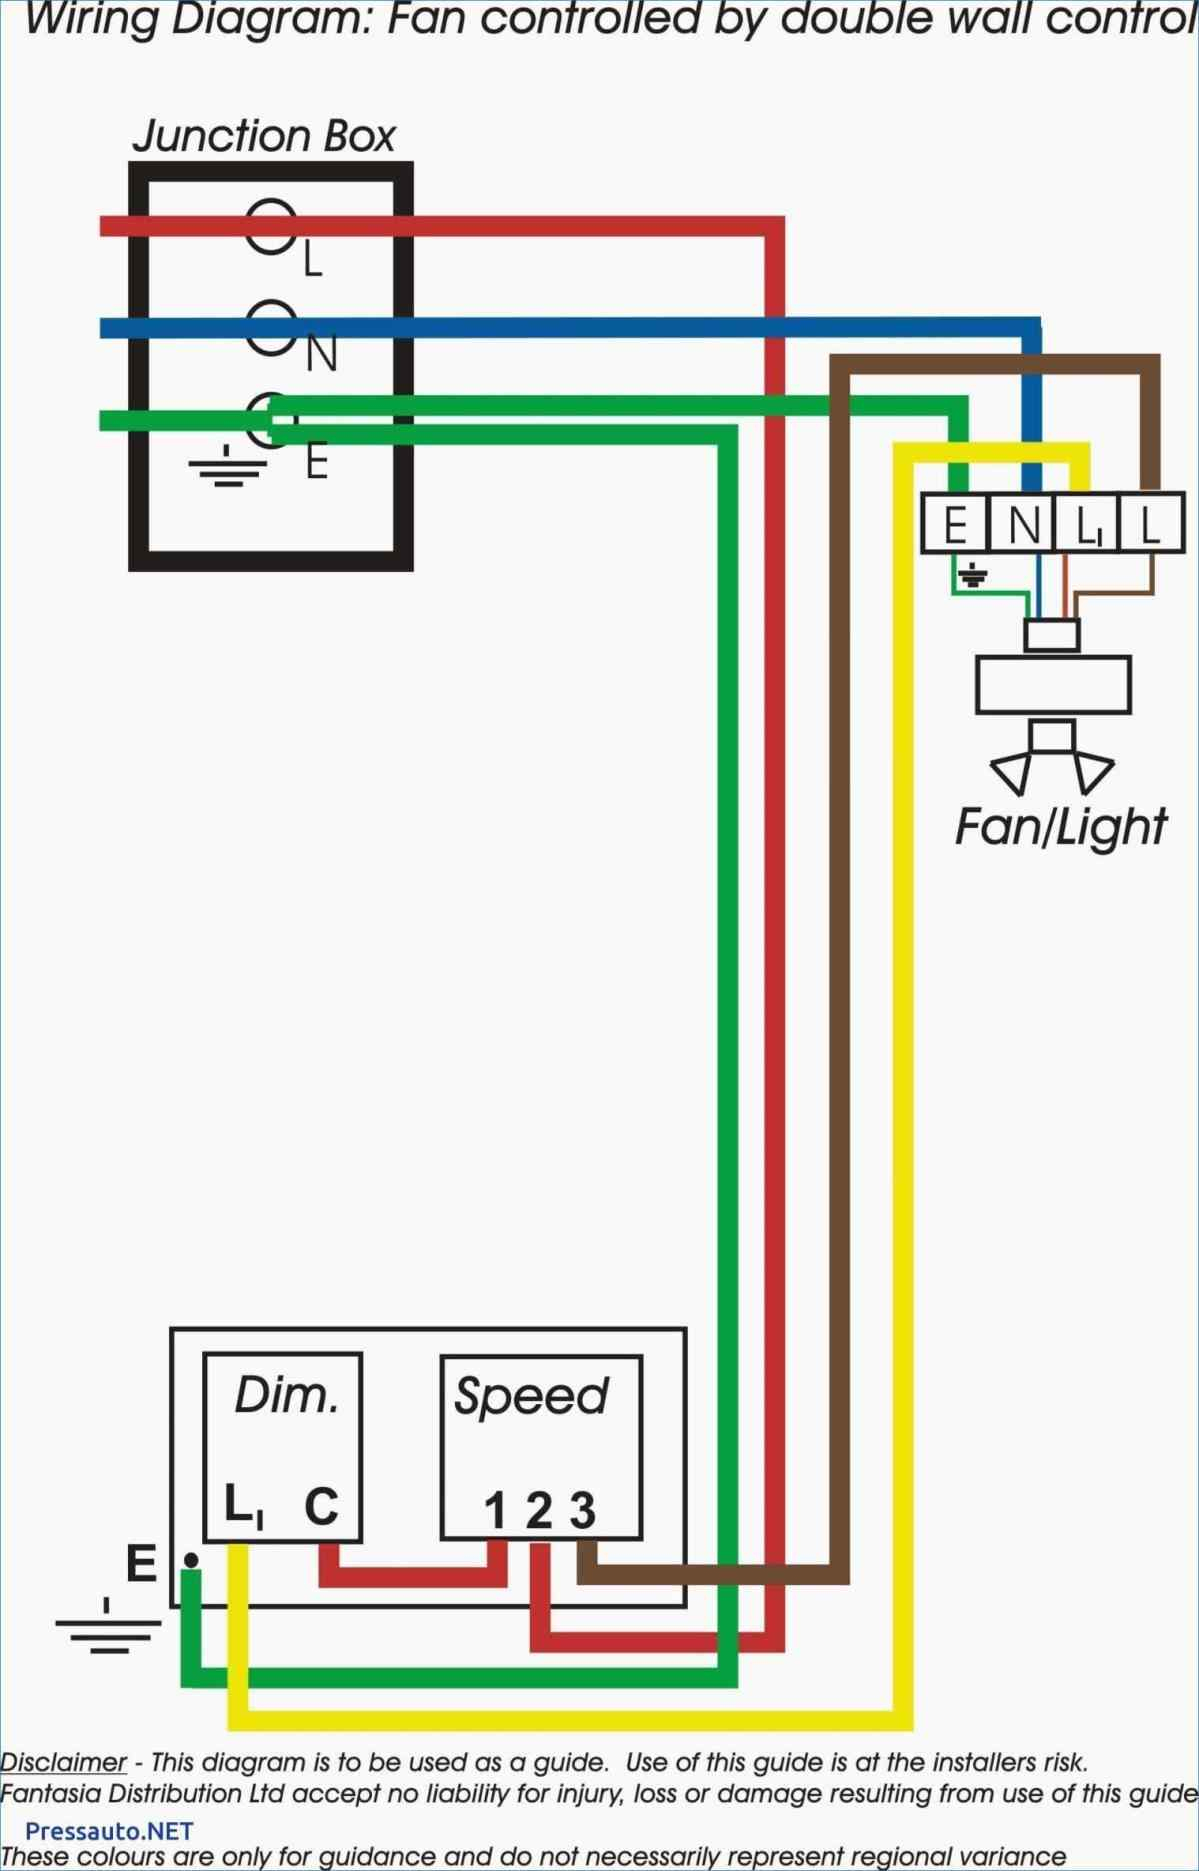 Usb 3 0 Micro B Wiring Diagram | Manual E-Books - Micro B Usb Wiring Diagram